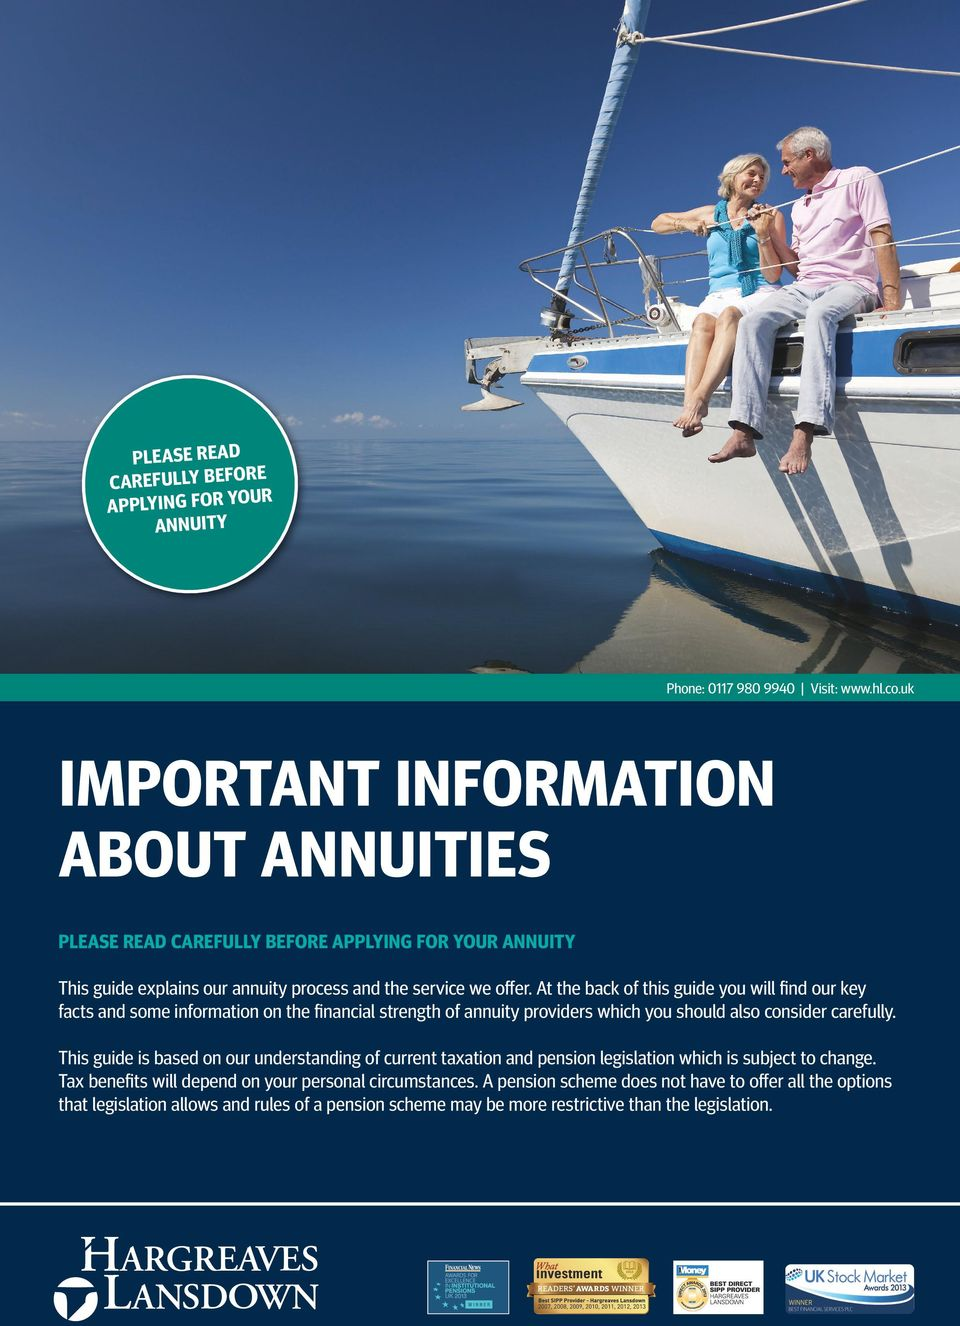 At the back of this guide you will find our key facts and some information on the financial strength of annuity providers which you should also consider carefully.